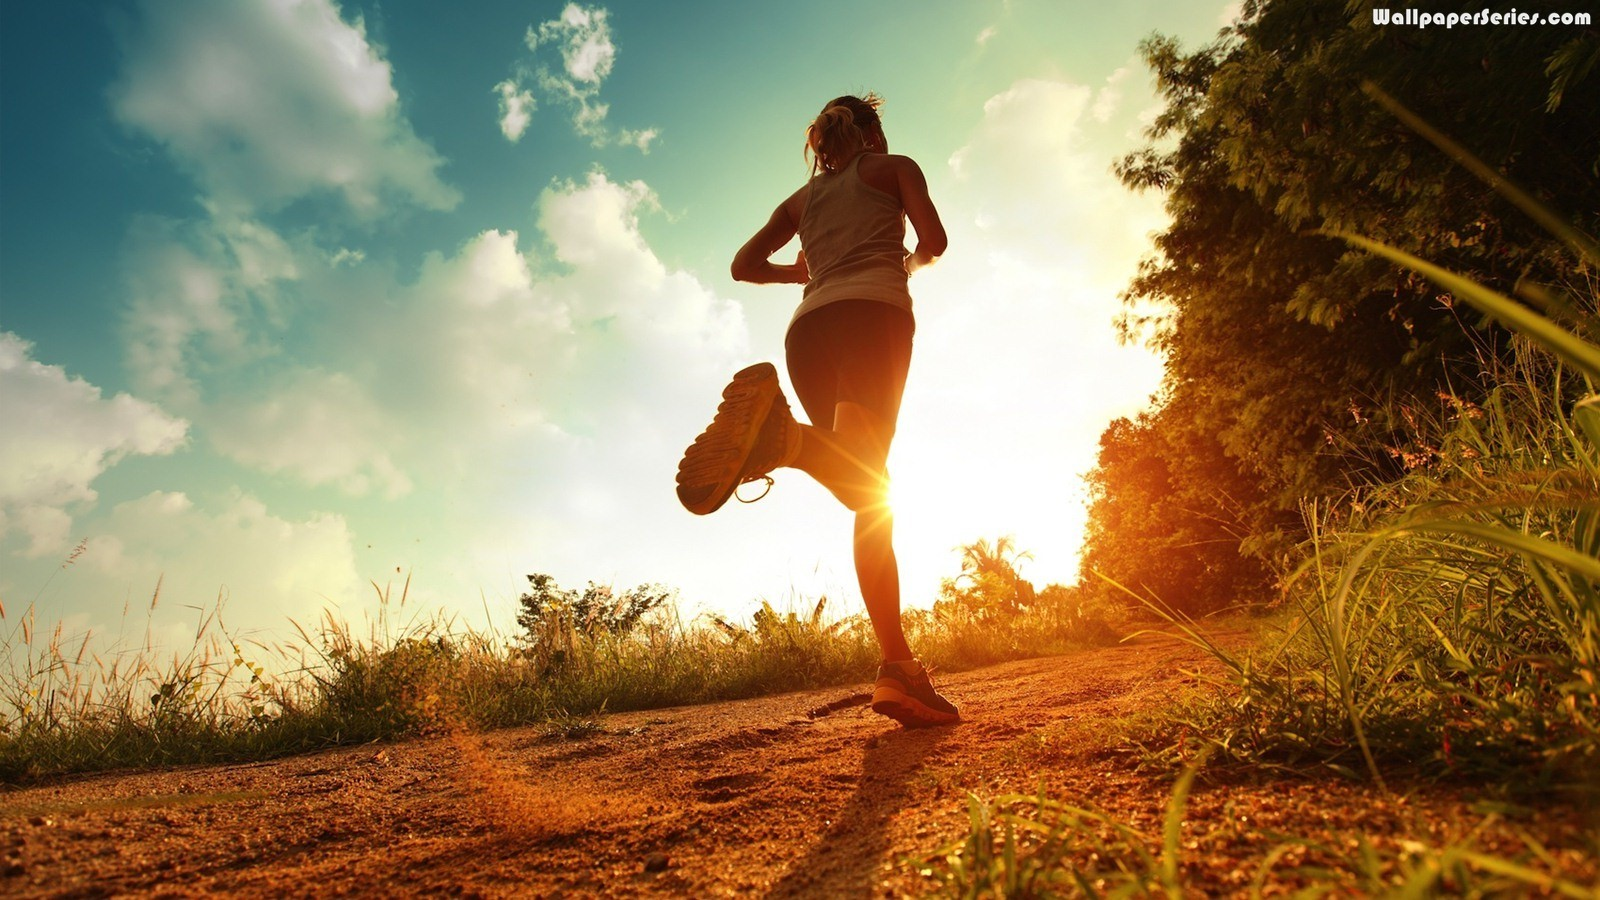 Running Exercise HD Wallpaper